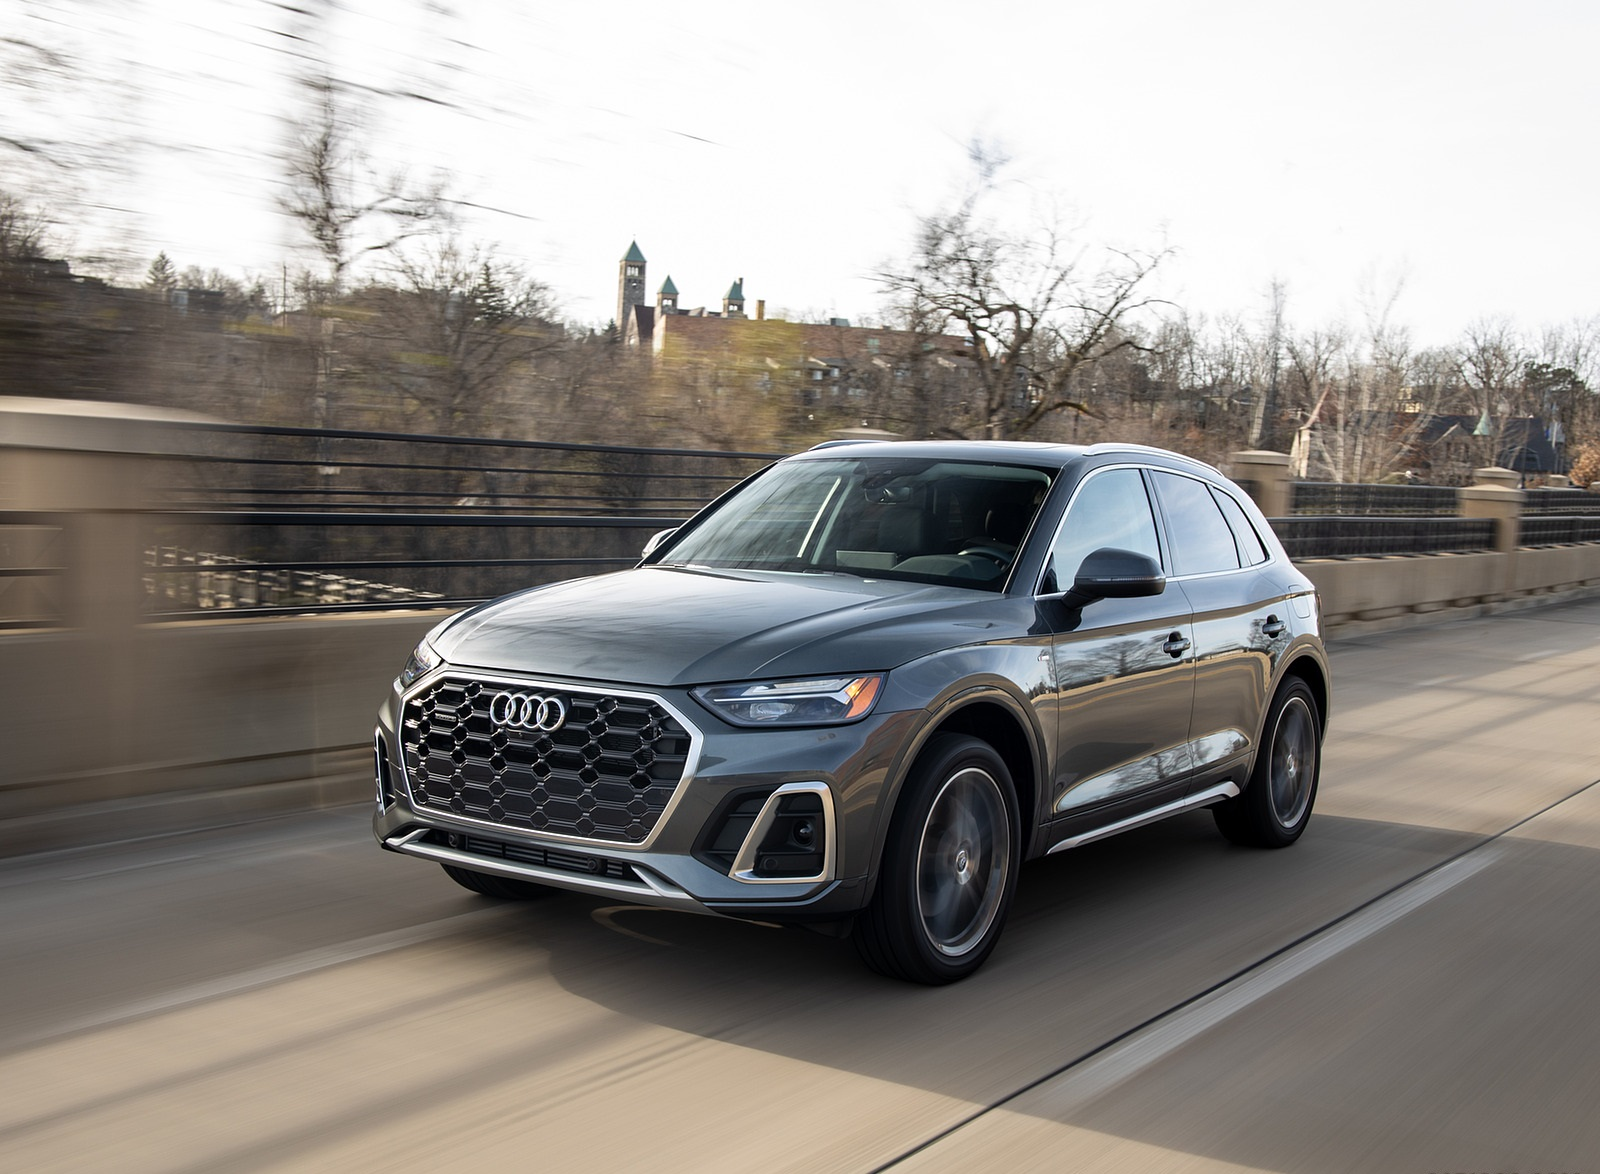 2021 Audi Q5 55 TFSI e quattro PHEV (US-Spec) Front Three-Quarter Wallpapers (3)